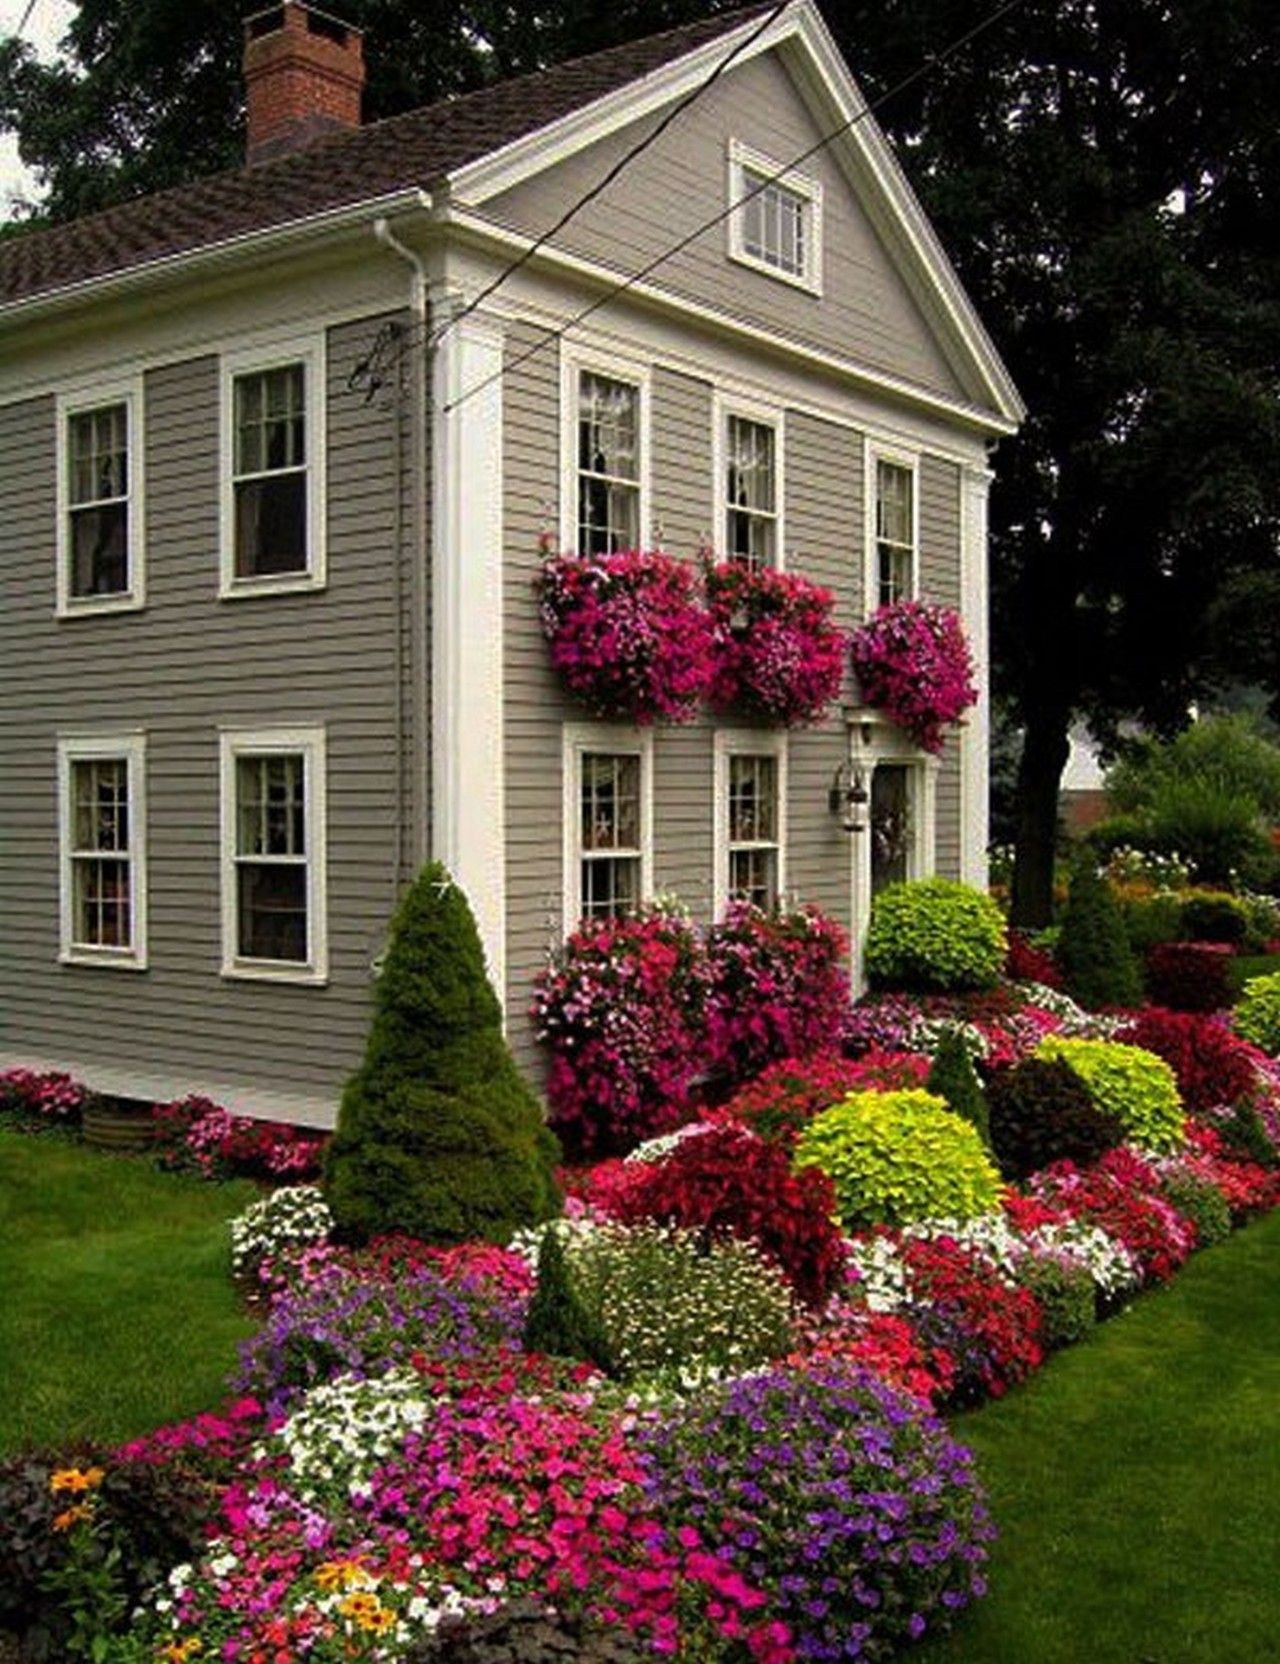 Awesome landscaping ideas for front yards composition for Flower designs for yards